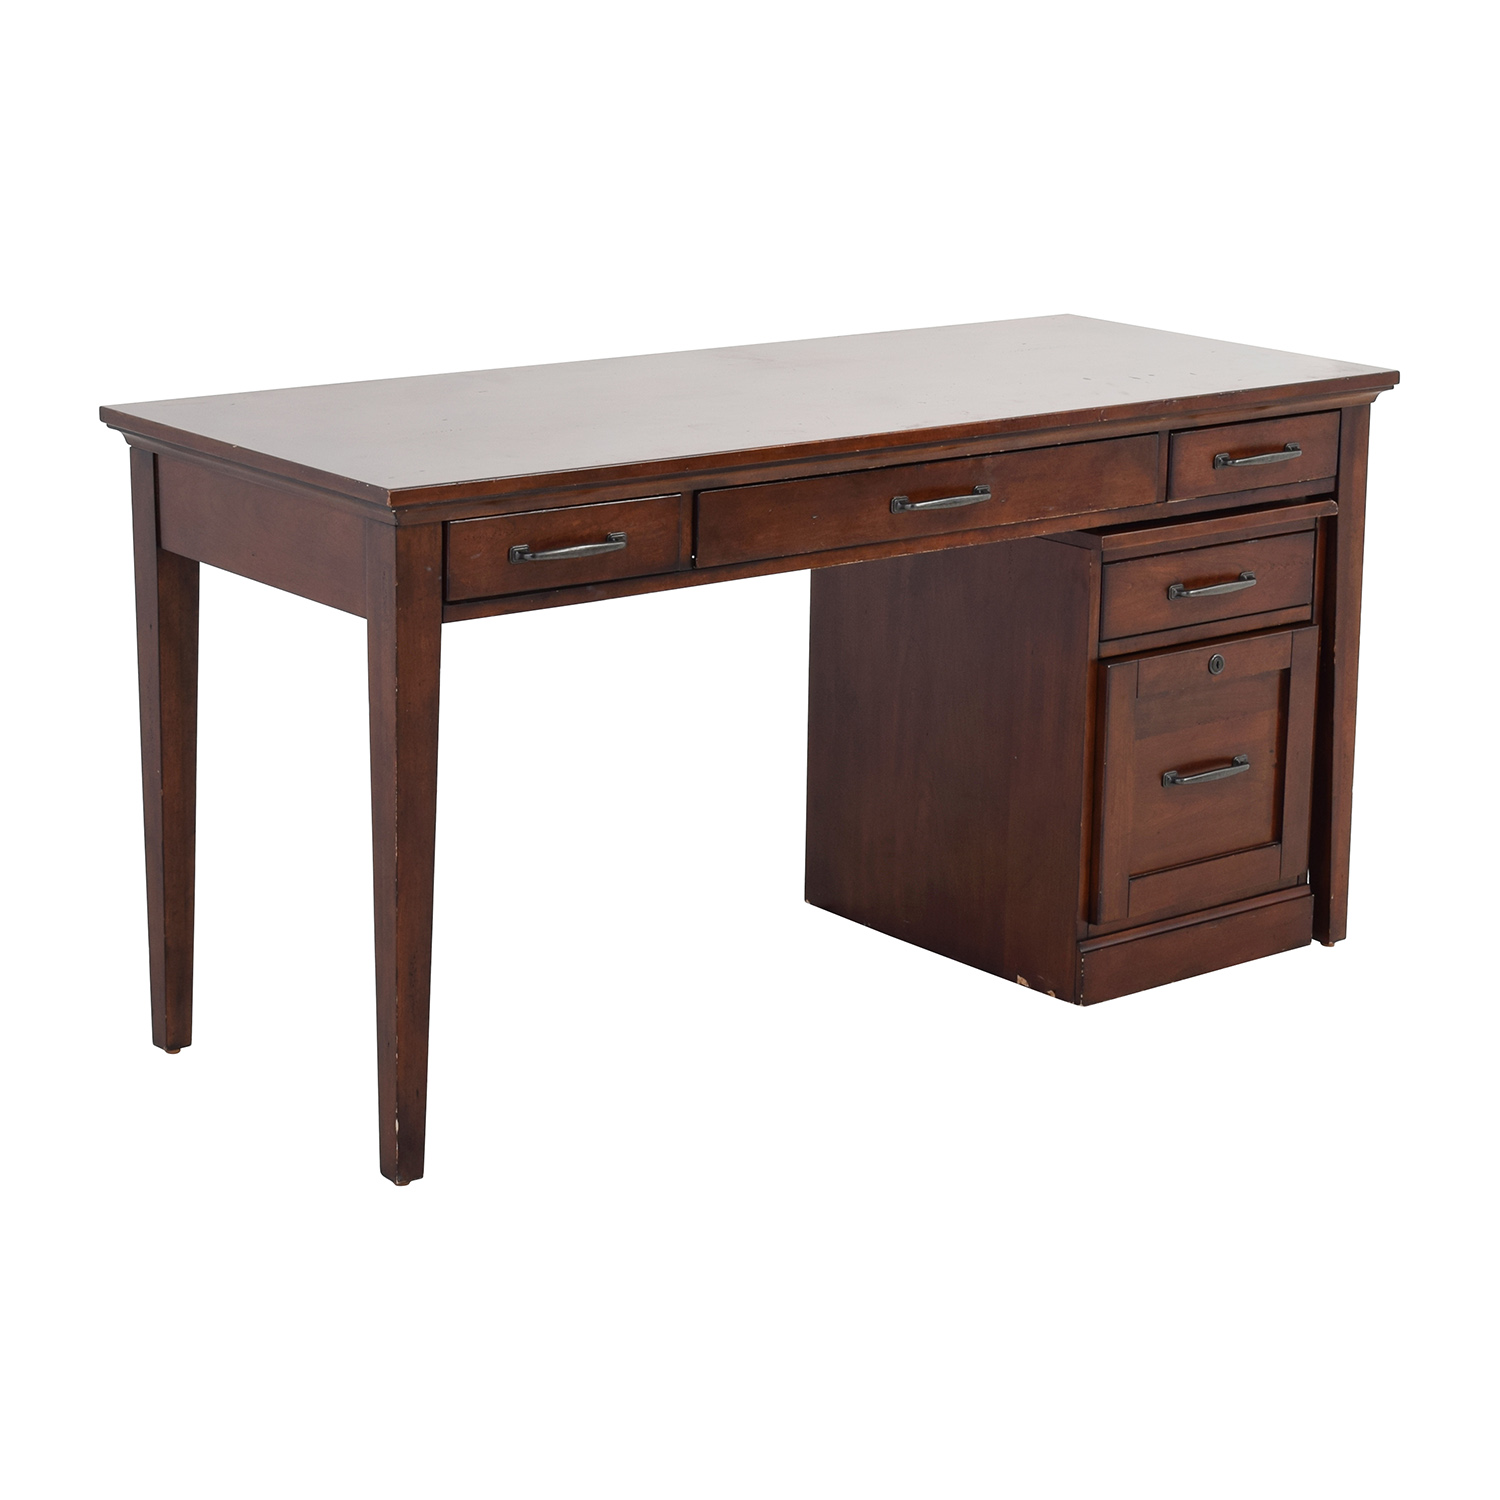 Nebraska Furniture Mart Desk And Rolling File Cabinet Used